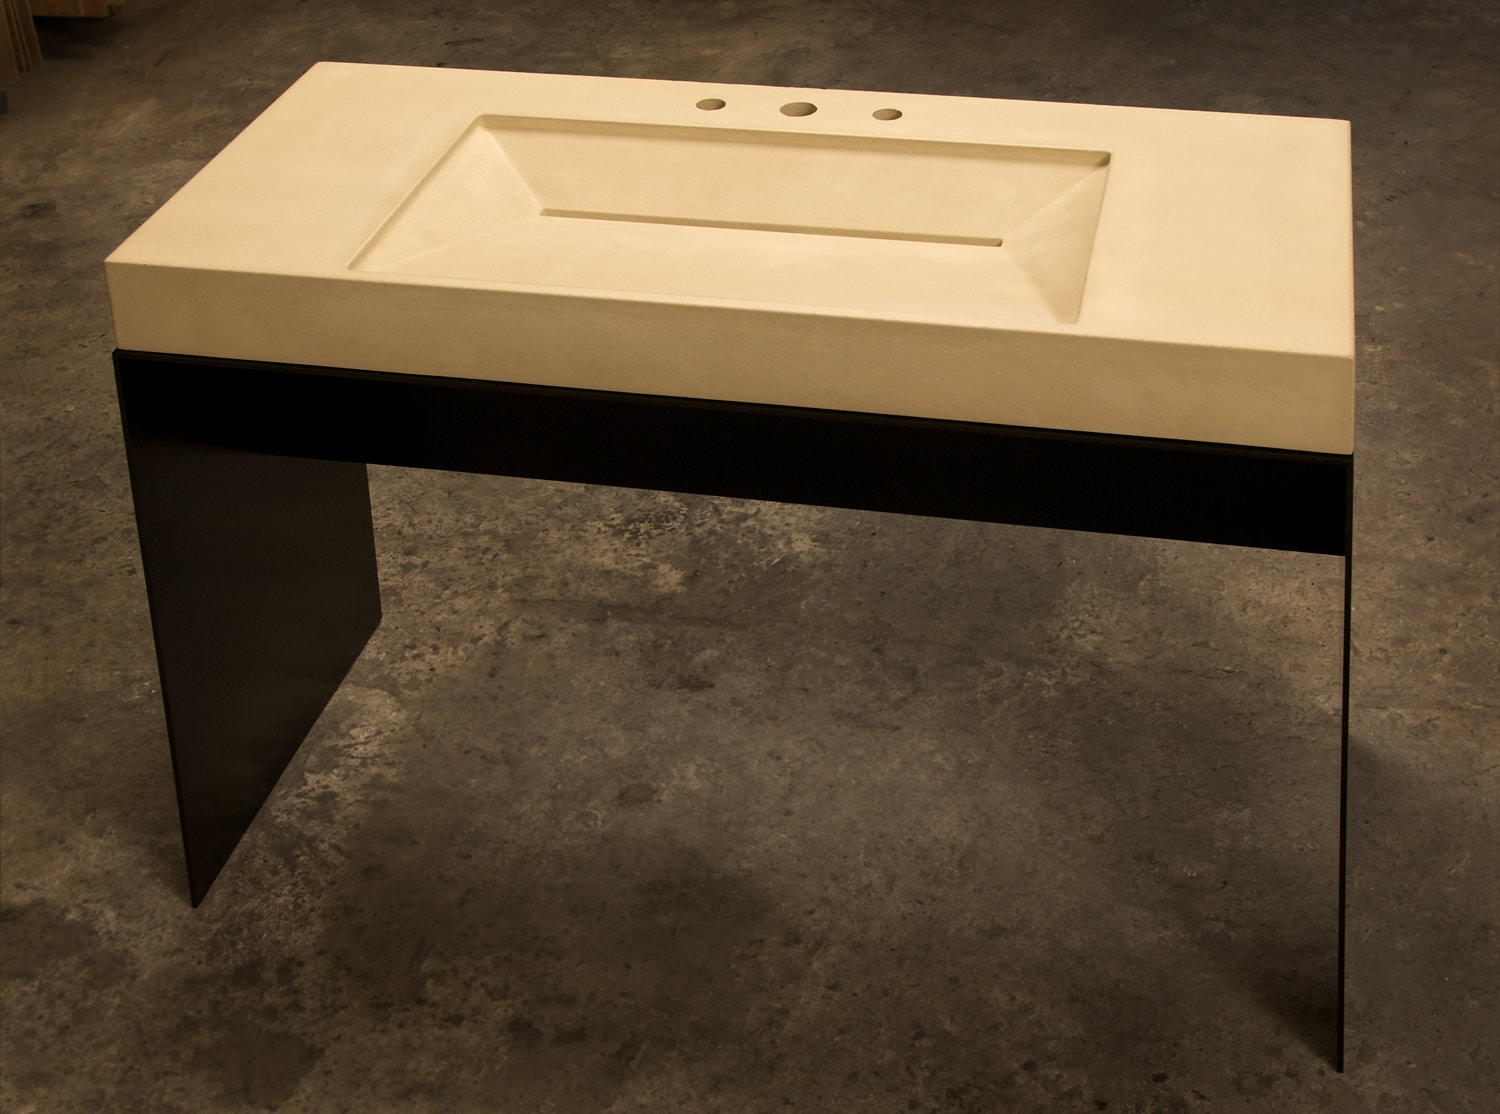 Concrete Ramp Sink in off-white on a blackened steel sink base for an ADA residence in San Francisco, CA